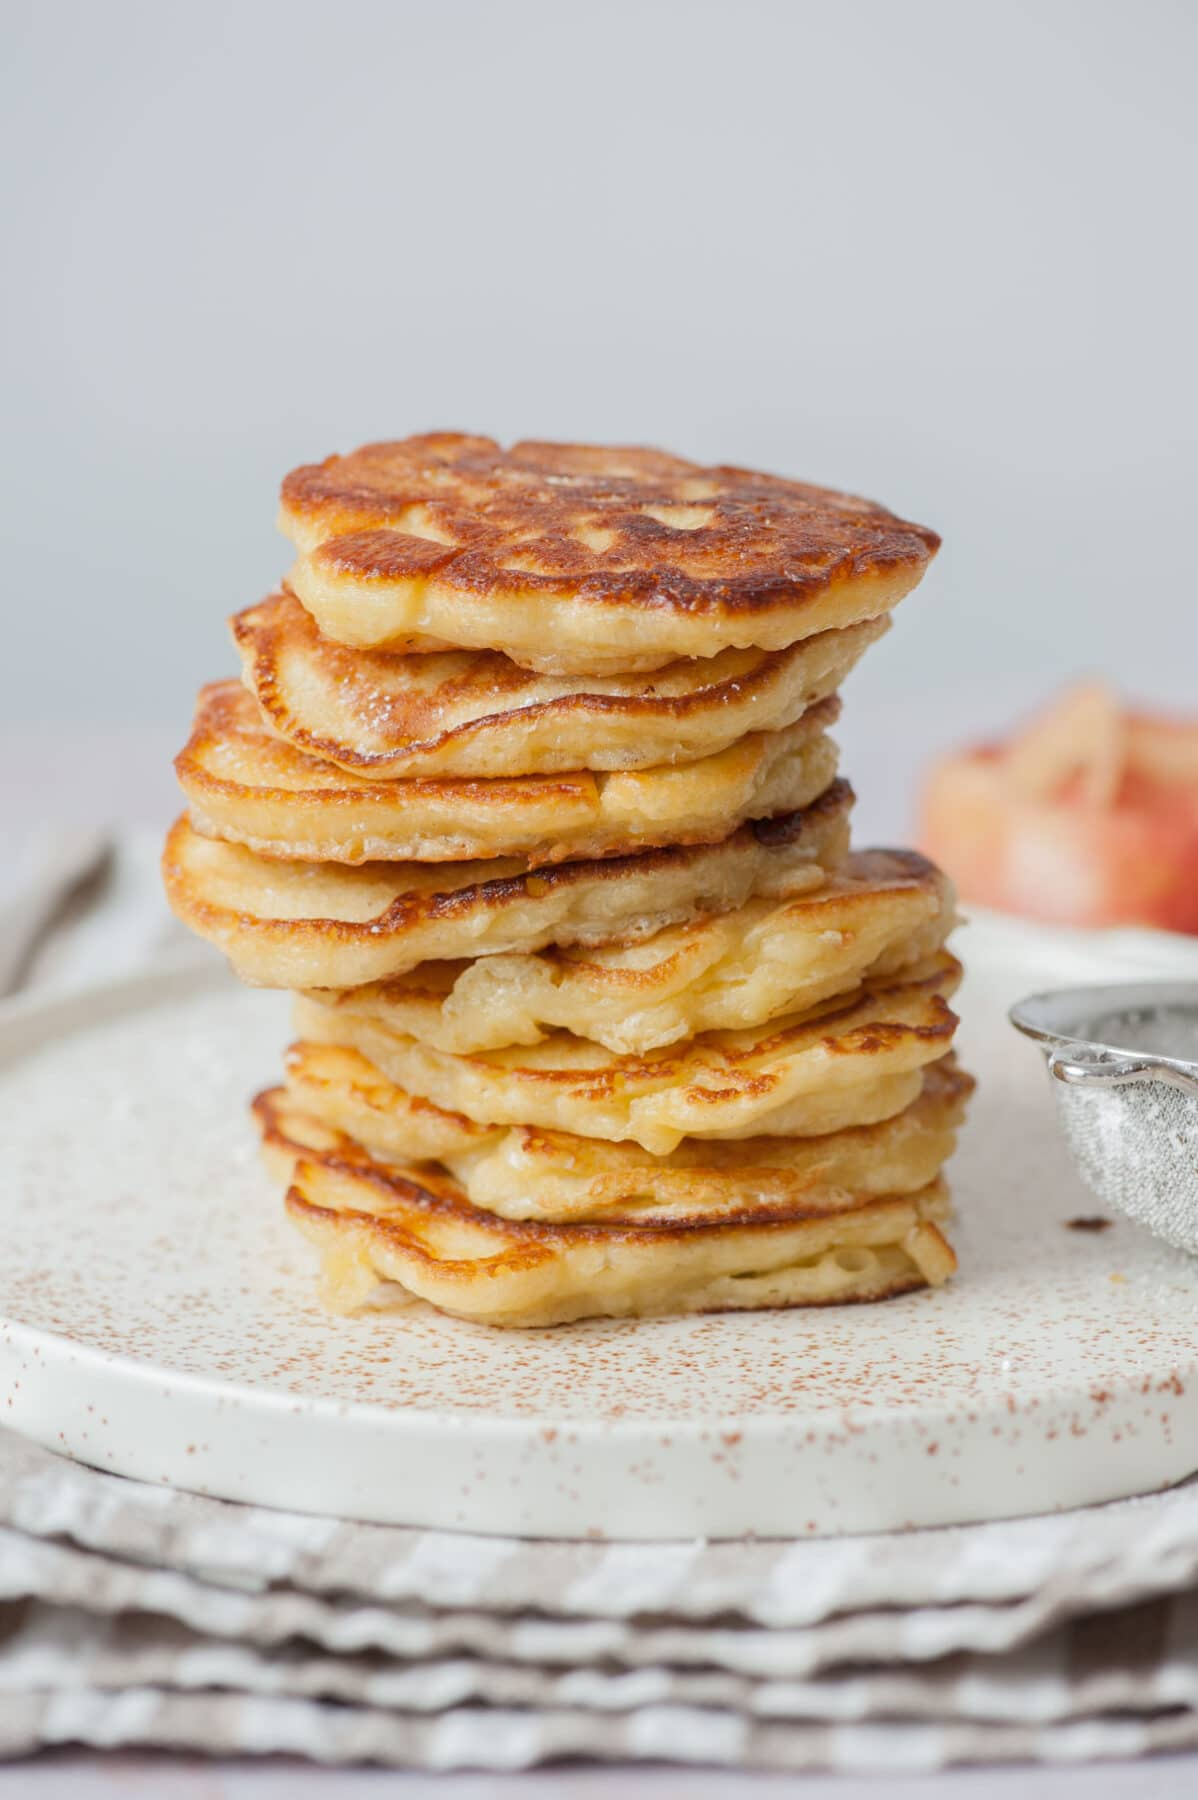 A stack of apple pancakes on a white plate.